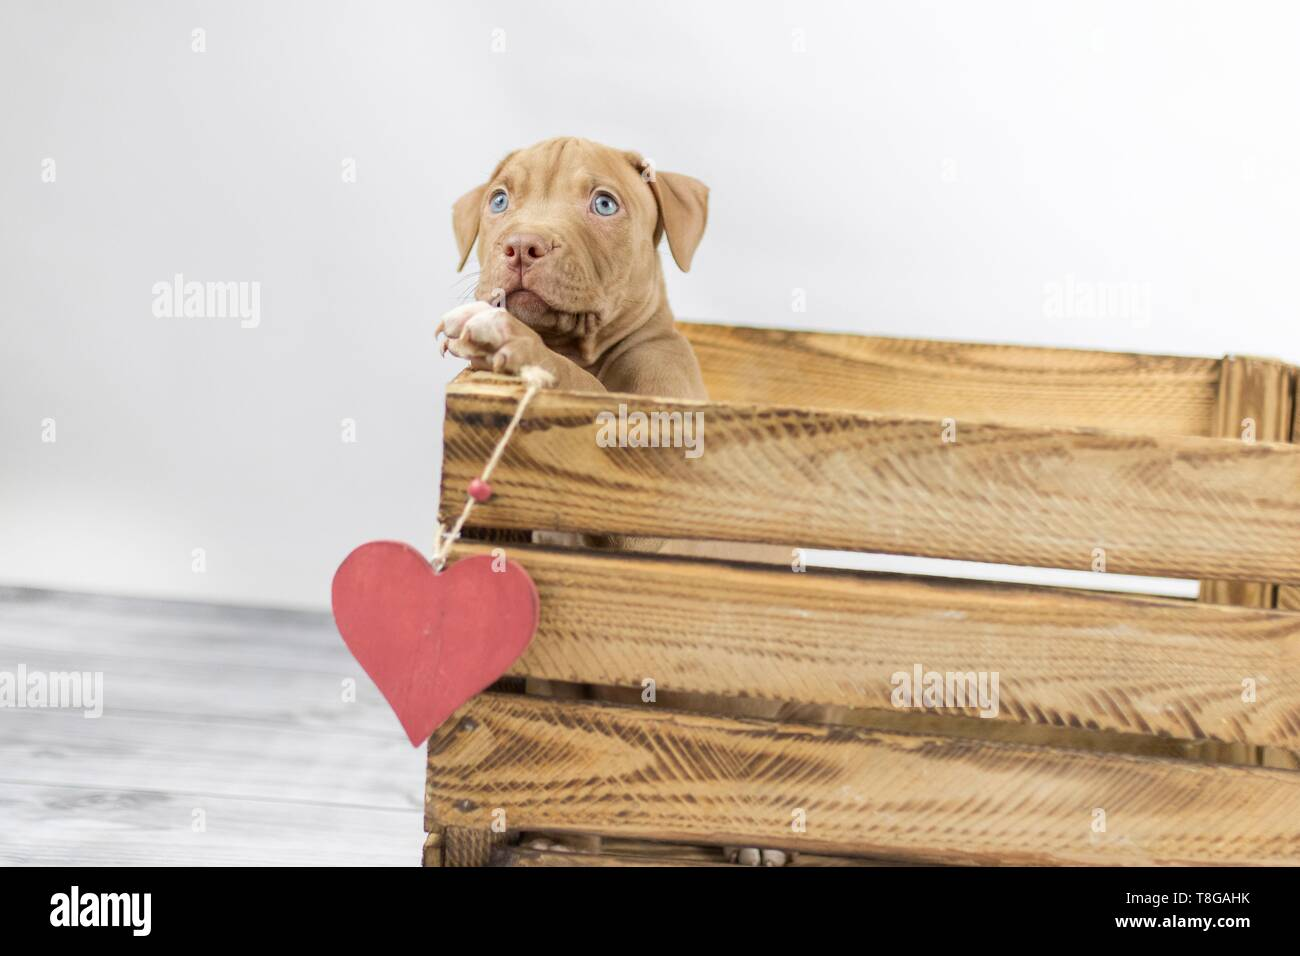 American Pit Bull Terrier - Stock Image